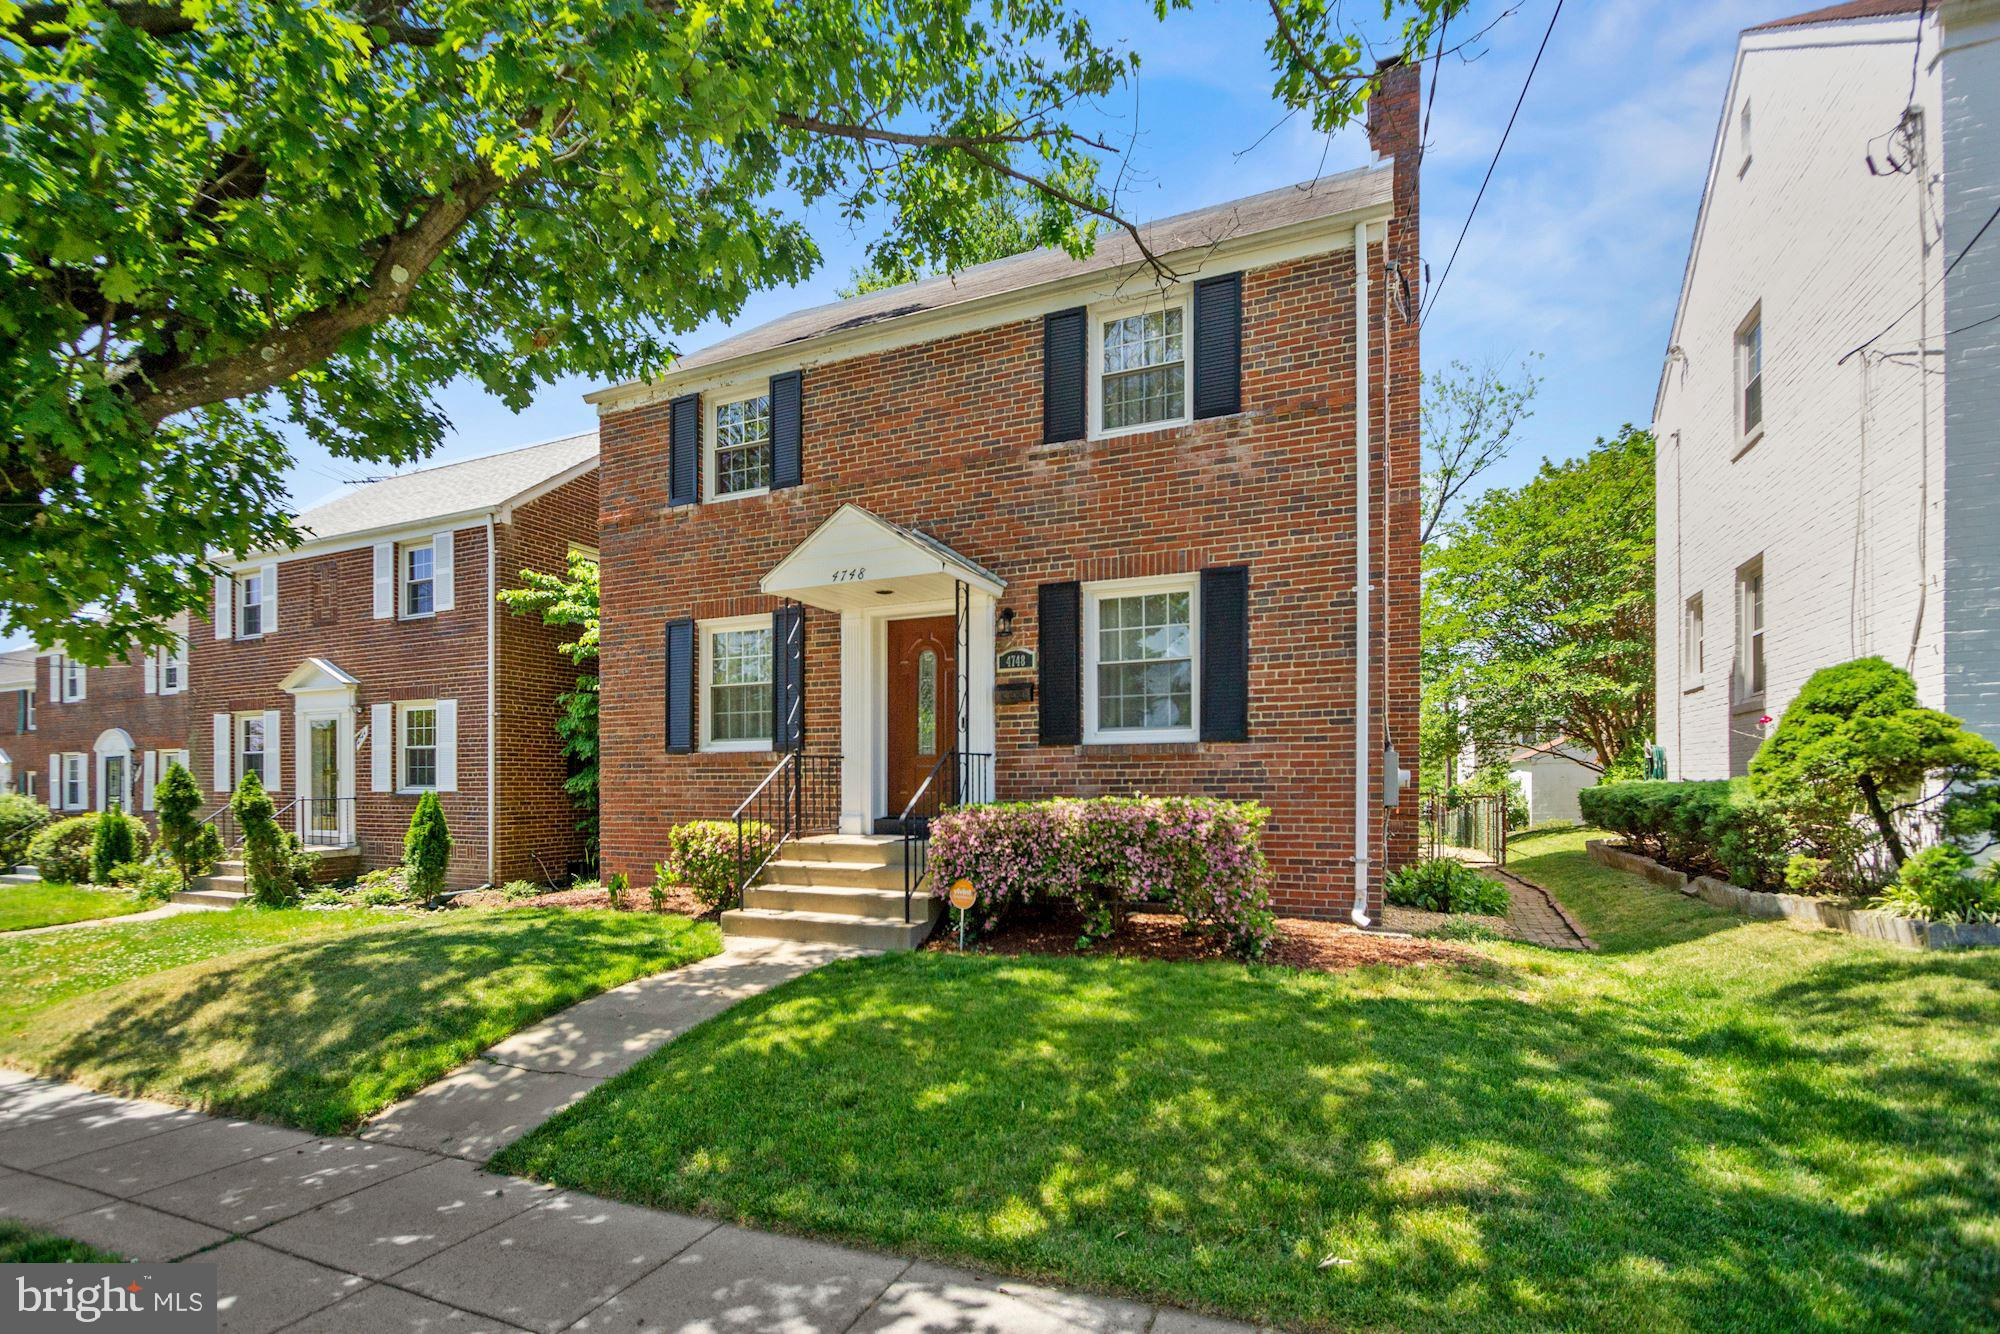 ***OFFER DEADLINE  - MONDAY JUNE 7 AT NOON     Welcome home to this stunning 3 bed, 2.5 bath Michigan Park gem with upgrades and updates throughout. You'll love the charm of this DC Colonial featuring an open floor plan, newly renovated kitchen and upgraded bathrooms. The main level is highlighted by newly refinished hardwood floors, new lighting, a fireplace in the living room, a updated half bath and beautifully renovated sunroom. The second level features newly refinished floors, 3 bedrooms and 2 full bathrooms - one with a soaking tub! Two closets in the primary bedroom allow for plenty of storage. High ceilings in the basement allow room for gym equipment, storage or future improvements . Updates include new furnace in 2020, new hot water heater in 2020, new water filtration system/softener in 2021.  Owner has meticulously maintained the home with a major renovation in 2018, including gourmet kitchen and all new kitchen appliances, upgraded electrical panel as well as all new lighting fixtures and doors throughout. This home features two private parking spaces and fully fenced backyard.  Conveniently located near Catholic University, Michigan Ave and Rhode Island Ave. We can't wait for you to come visit!